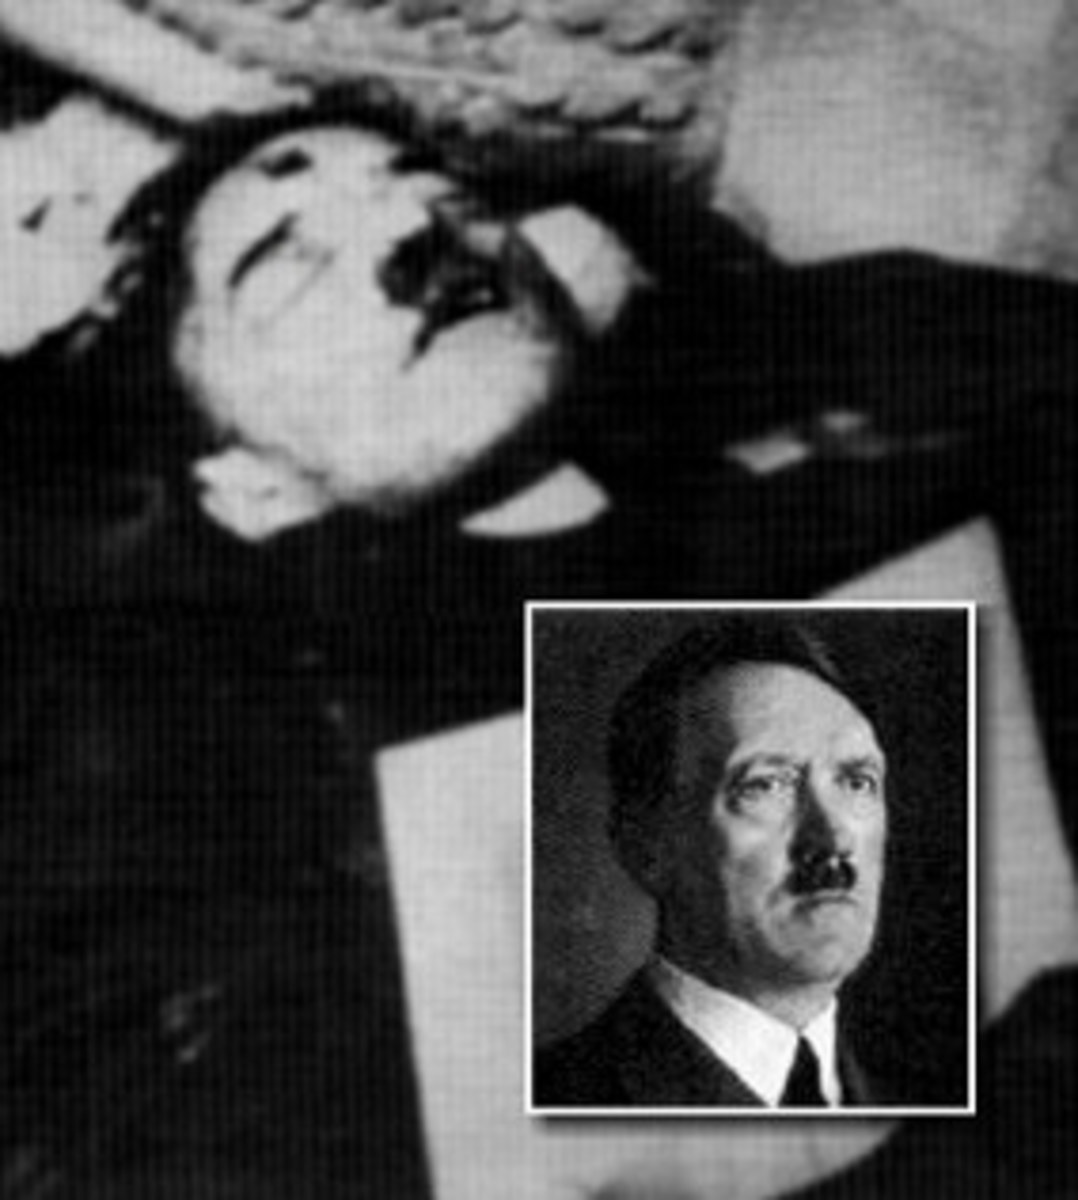 Russian photo of exhumed corpse of Hitler's double - May 2, 1945   (note bullet hole in forehead)